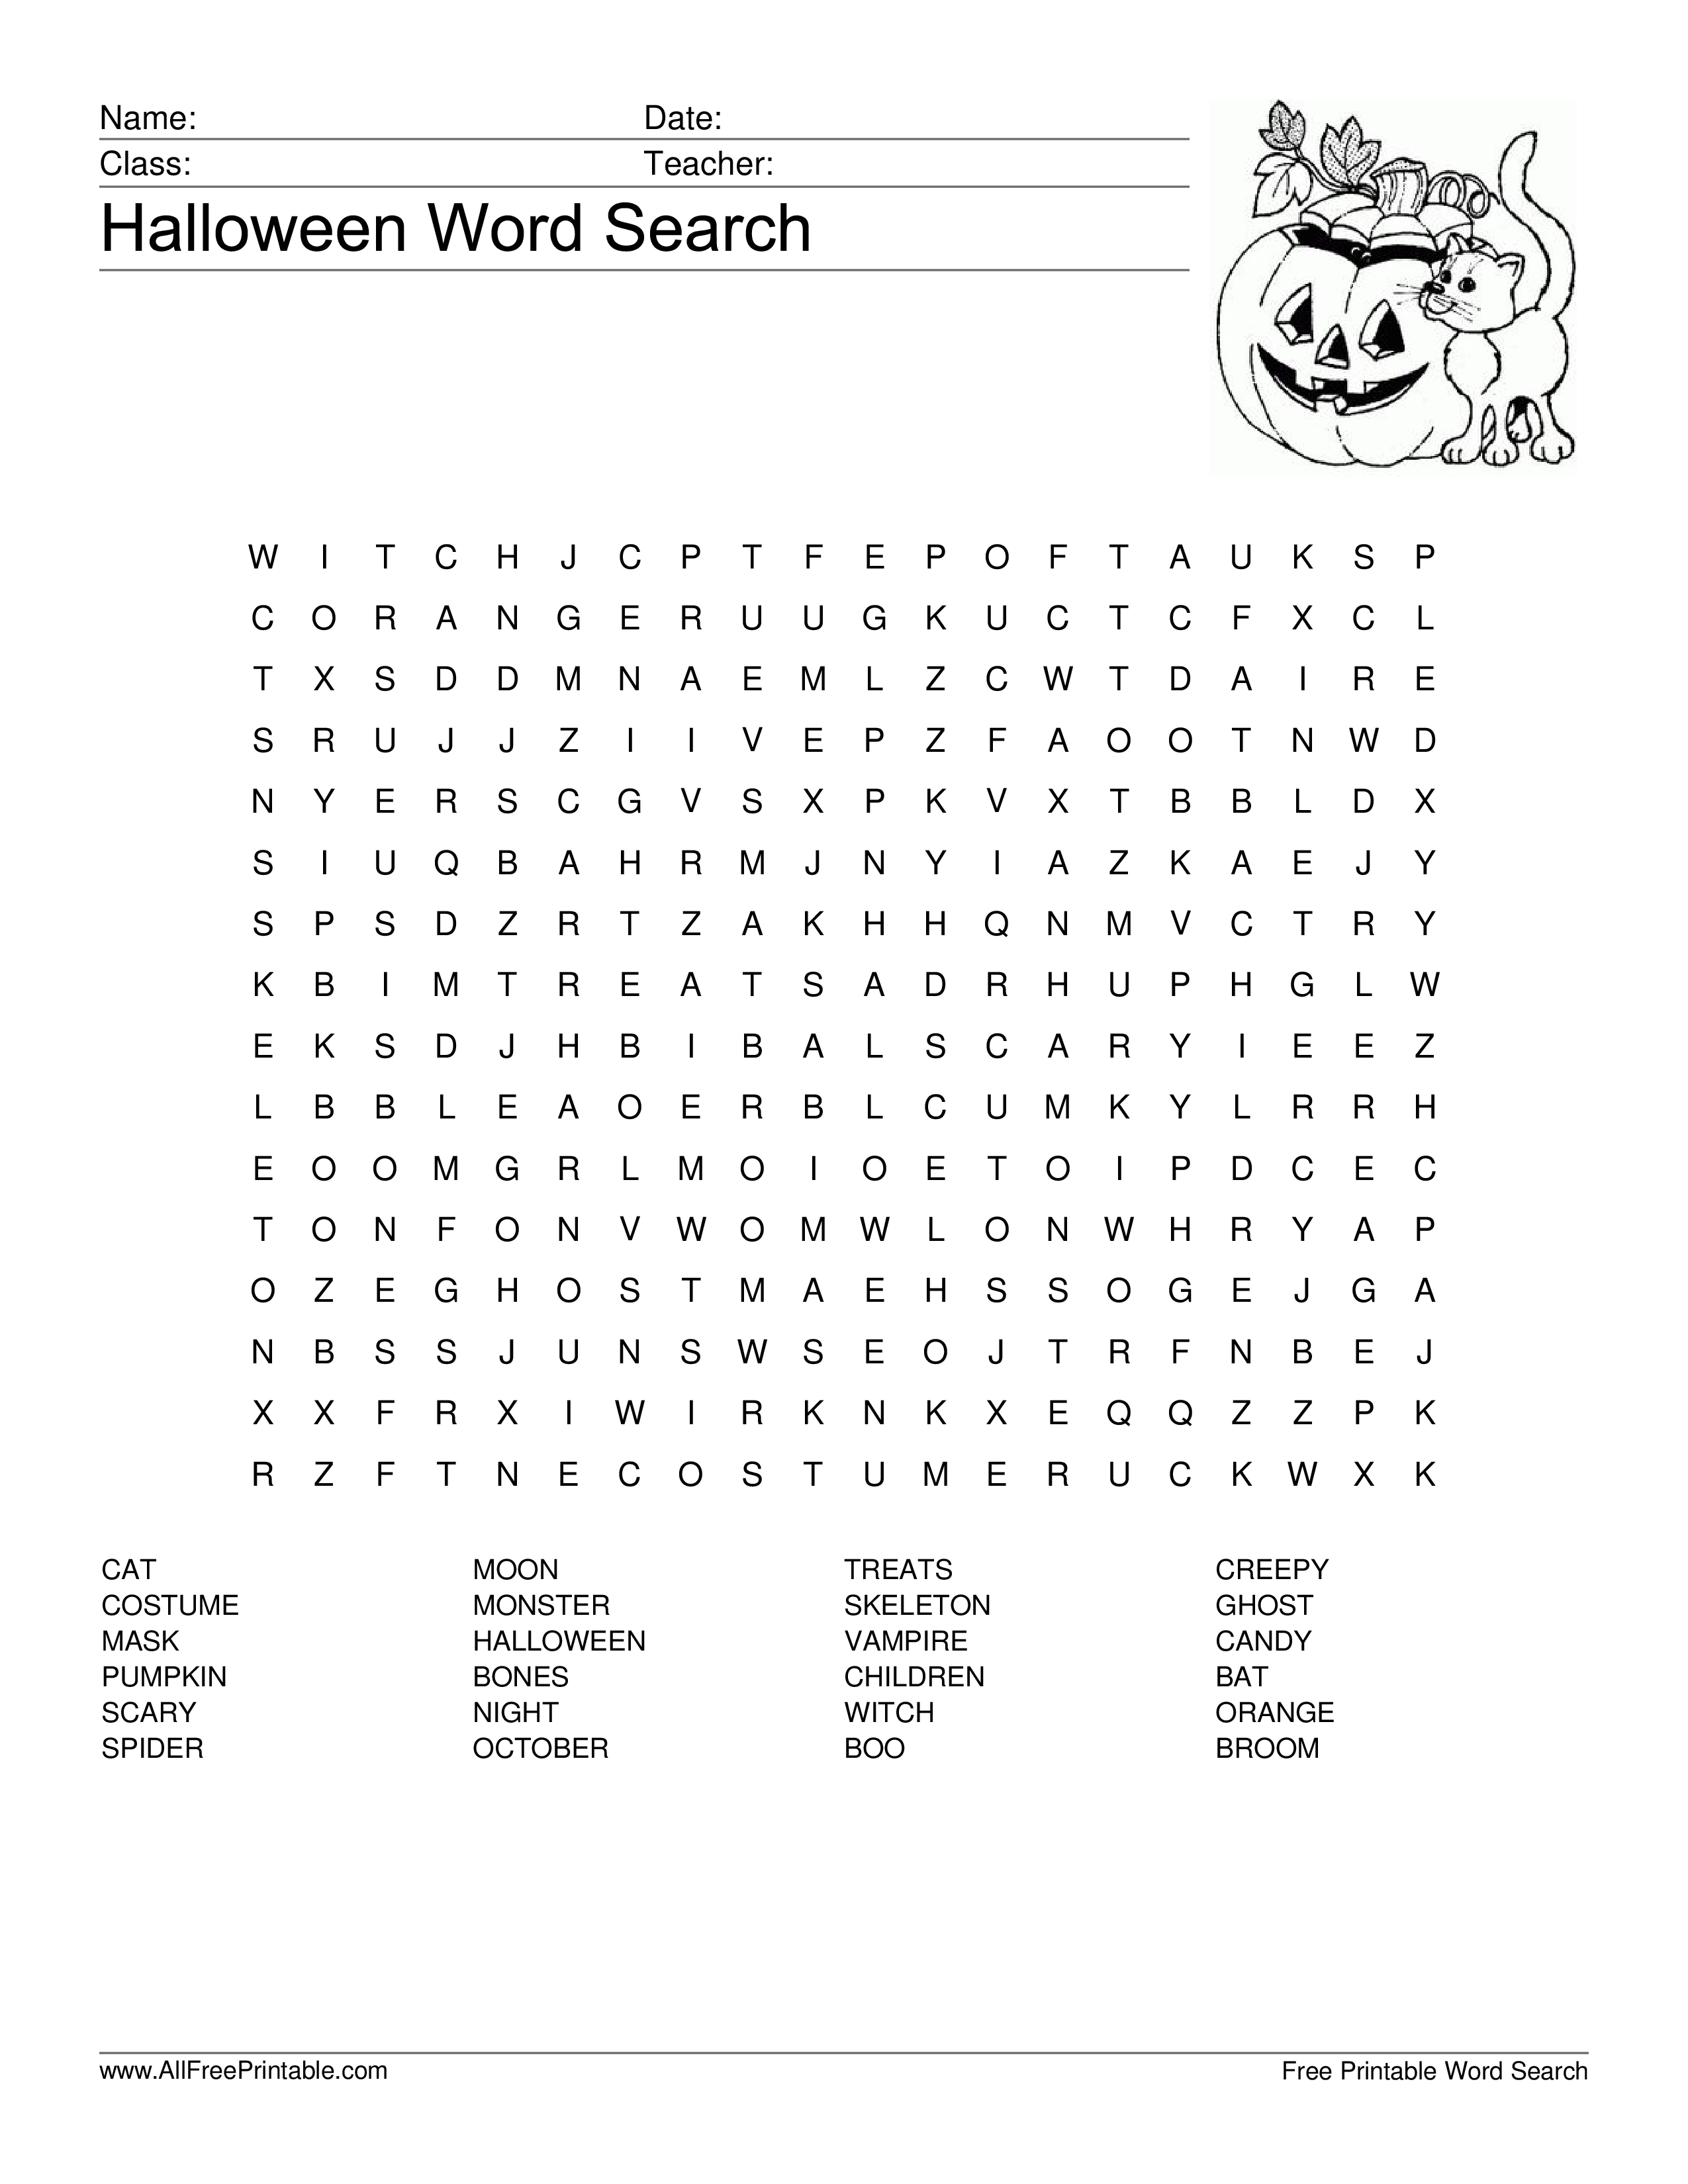 Word Search Main Image Template